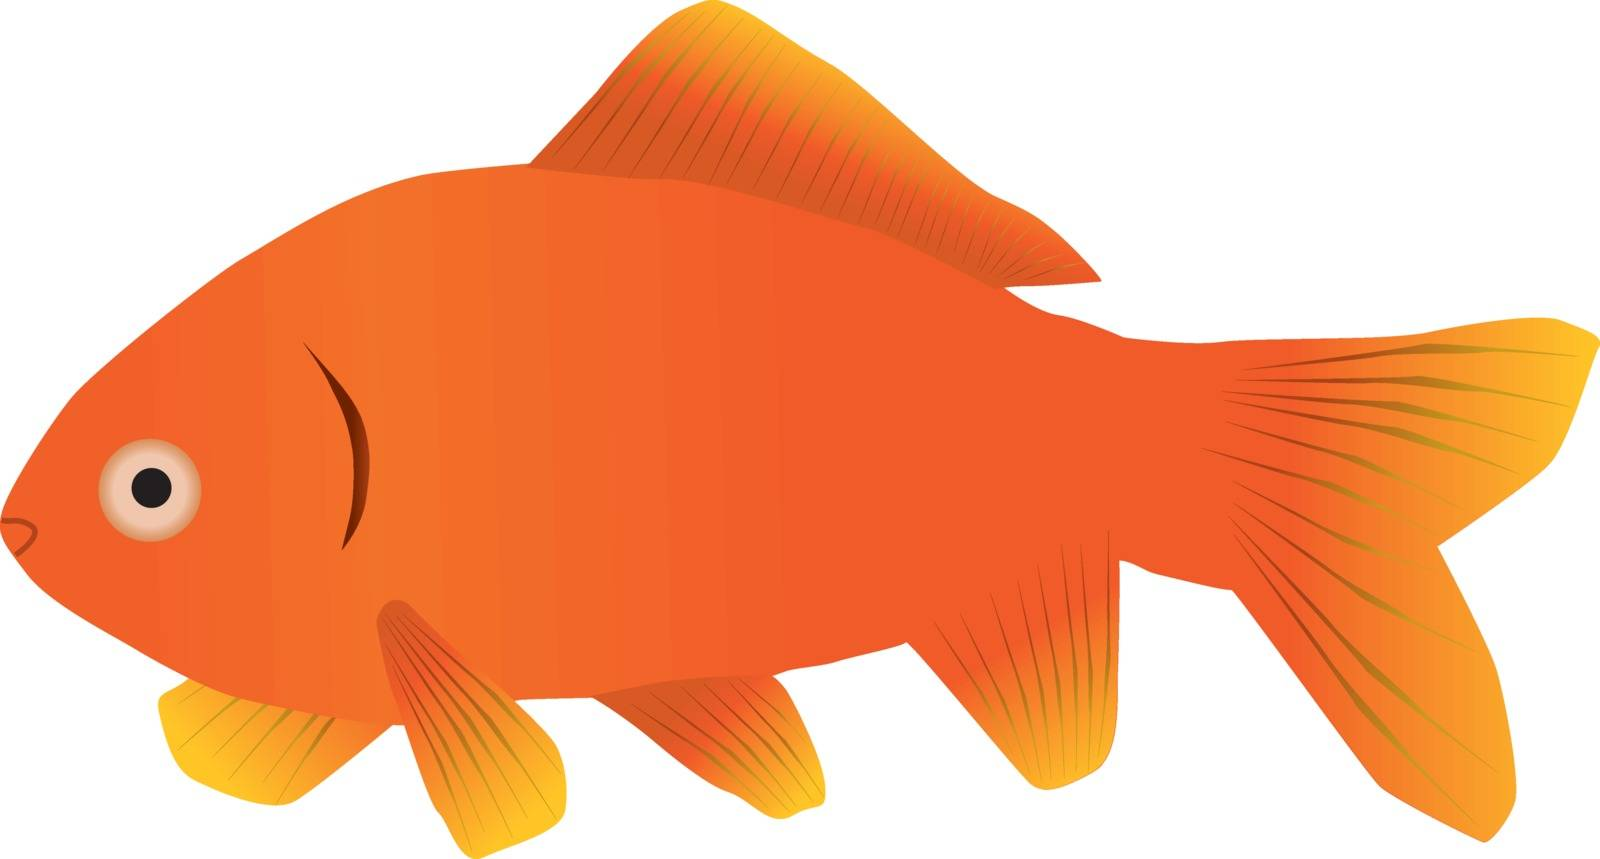 A goldfish by Bwise